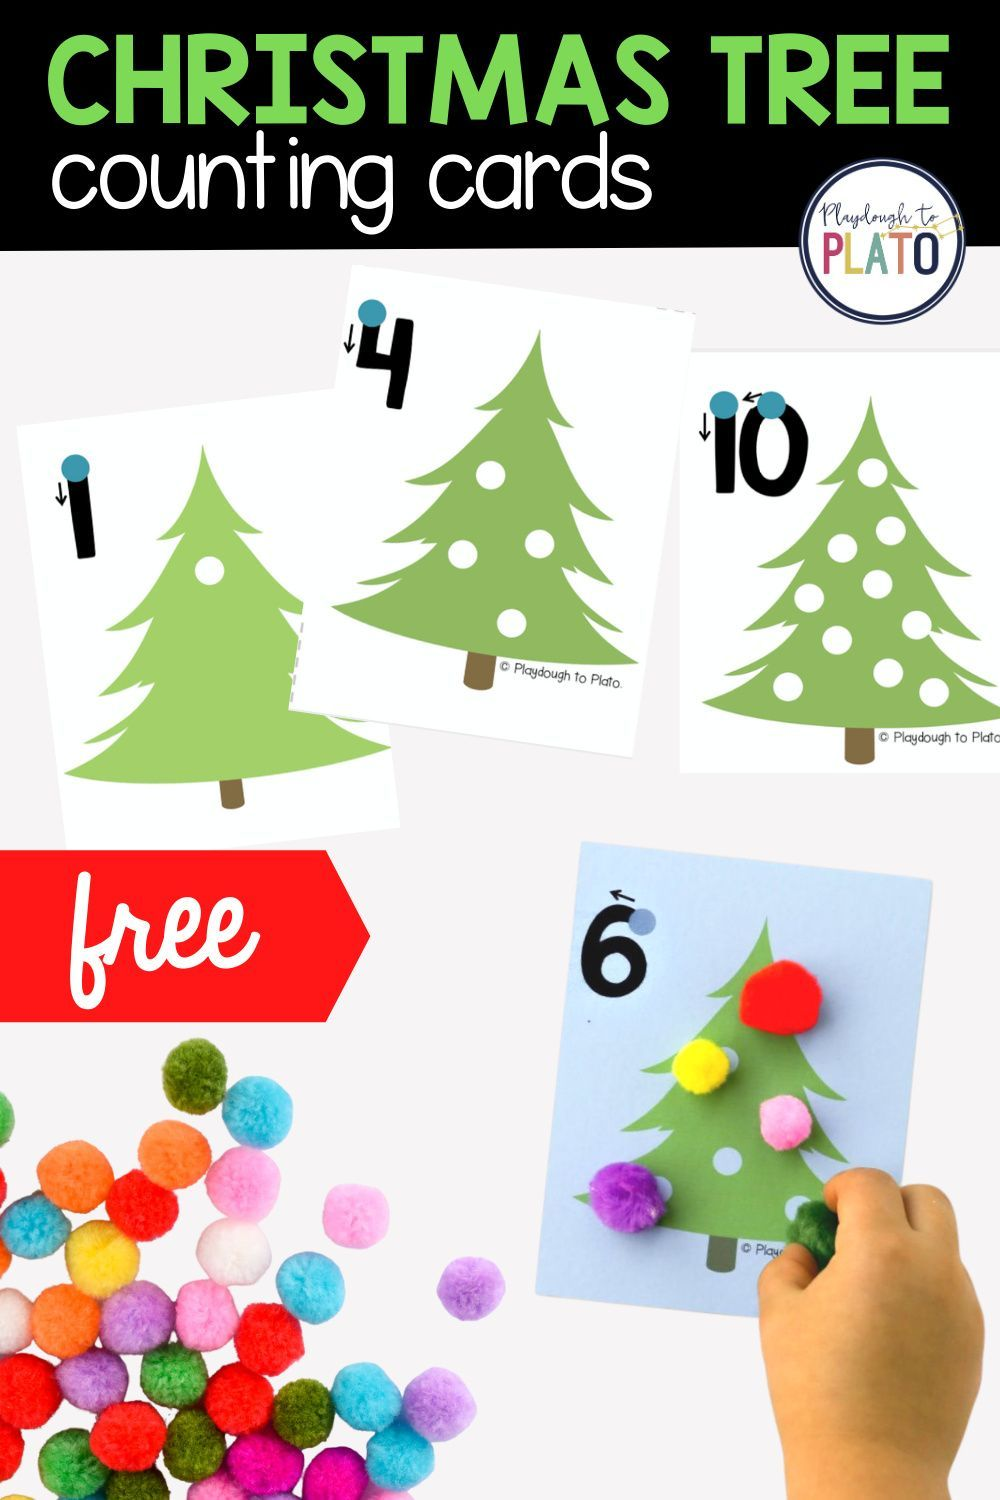 Christmas Tree Counting Cards Playdough To Plato Christmas Learning Activities Preschool Christmas Activities Christmas Learning [ 1500 x 1000 Pixel ]